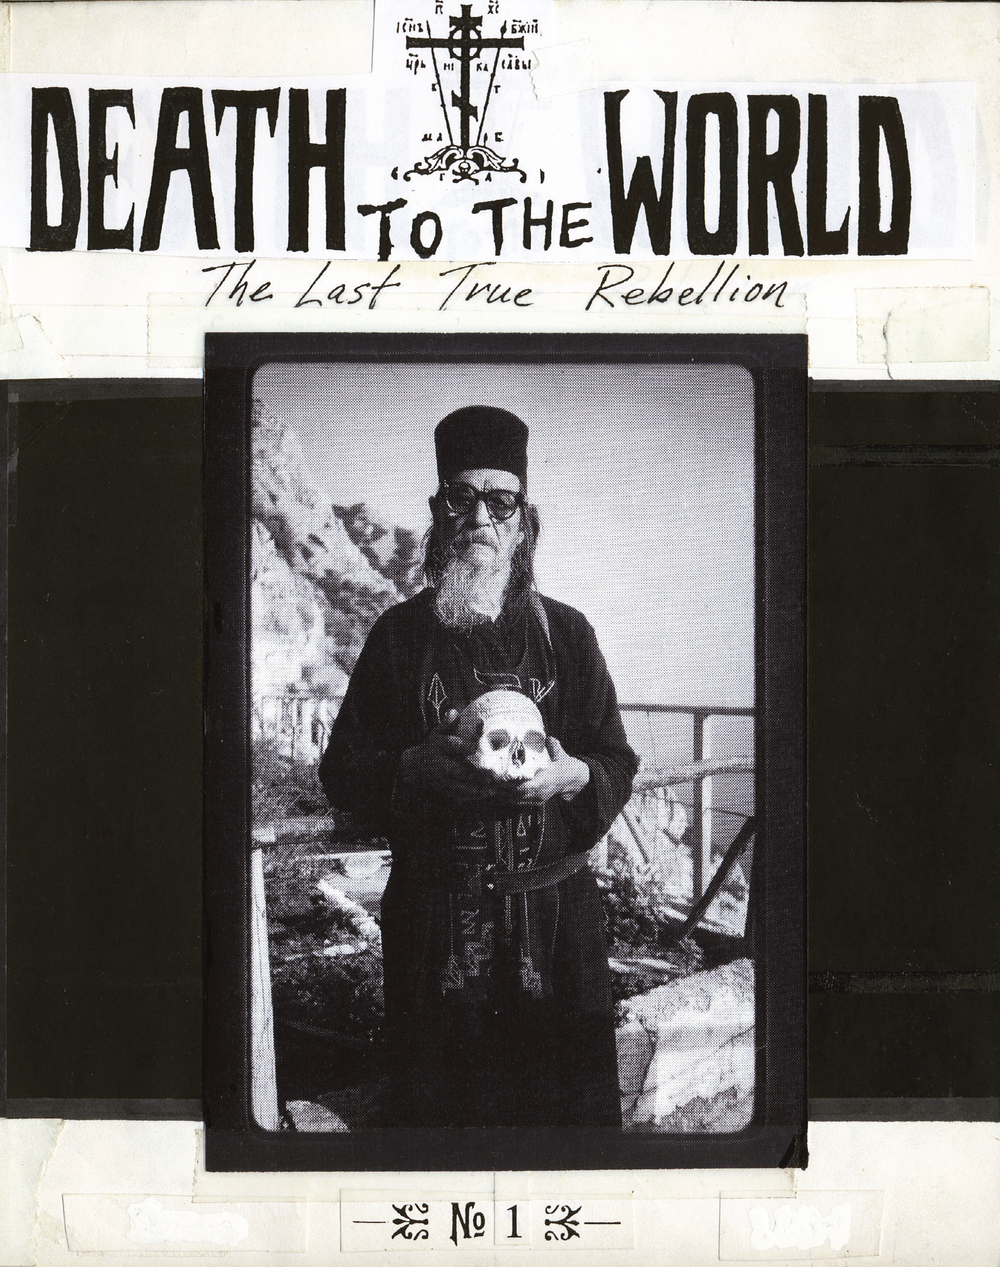 The first issue of Death to the World.